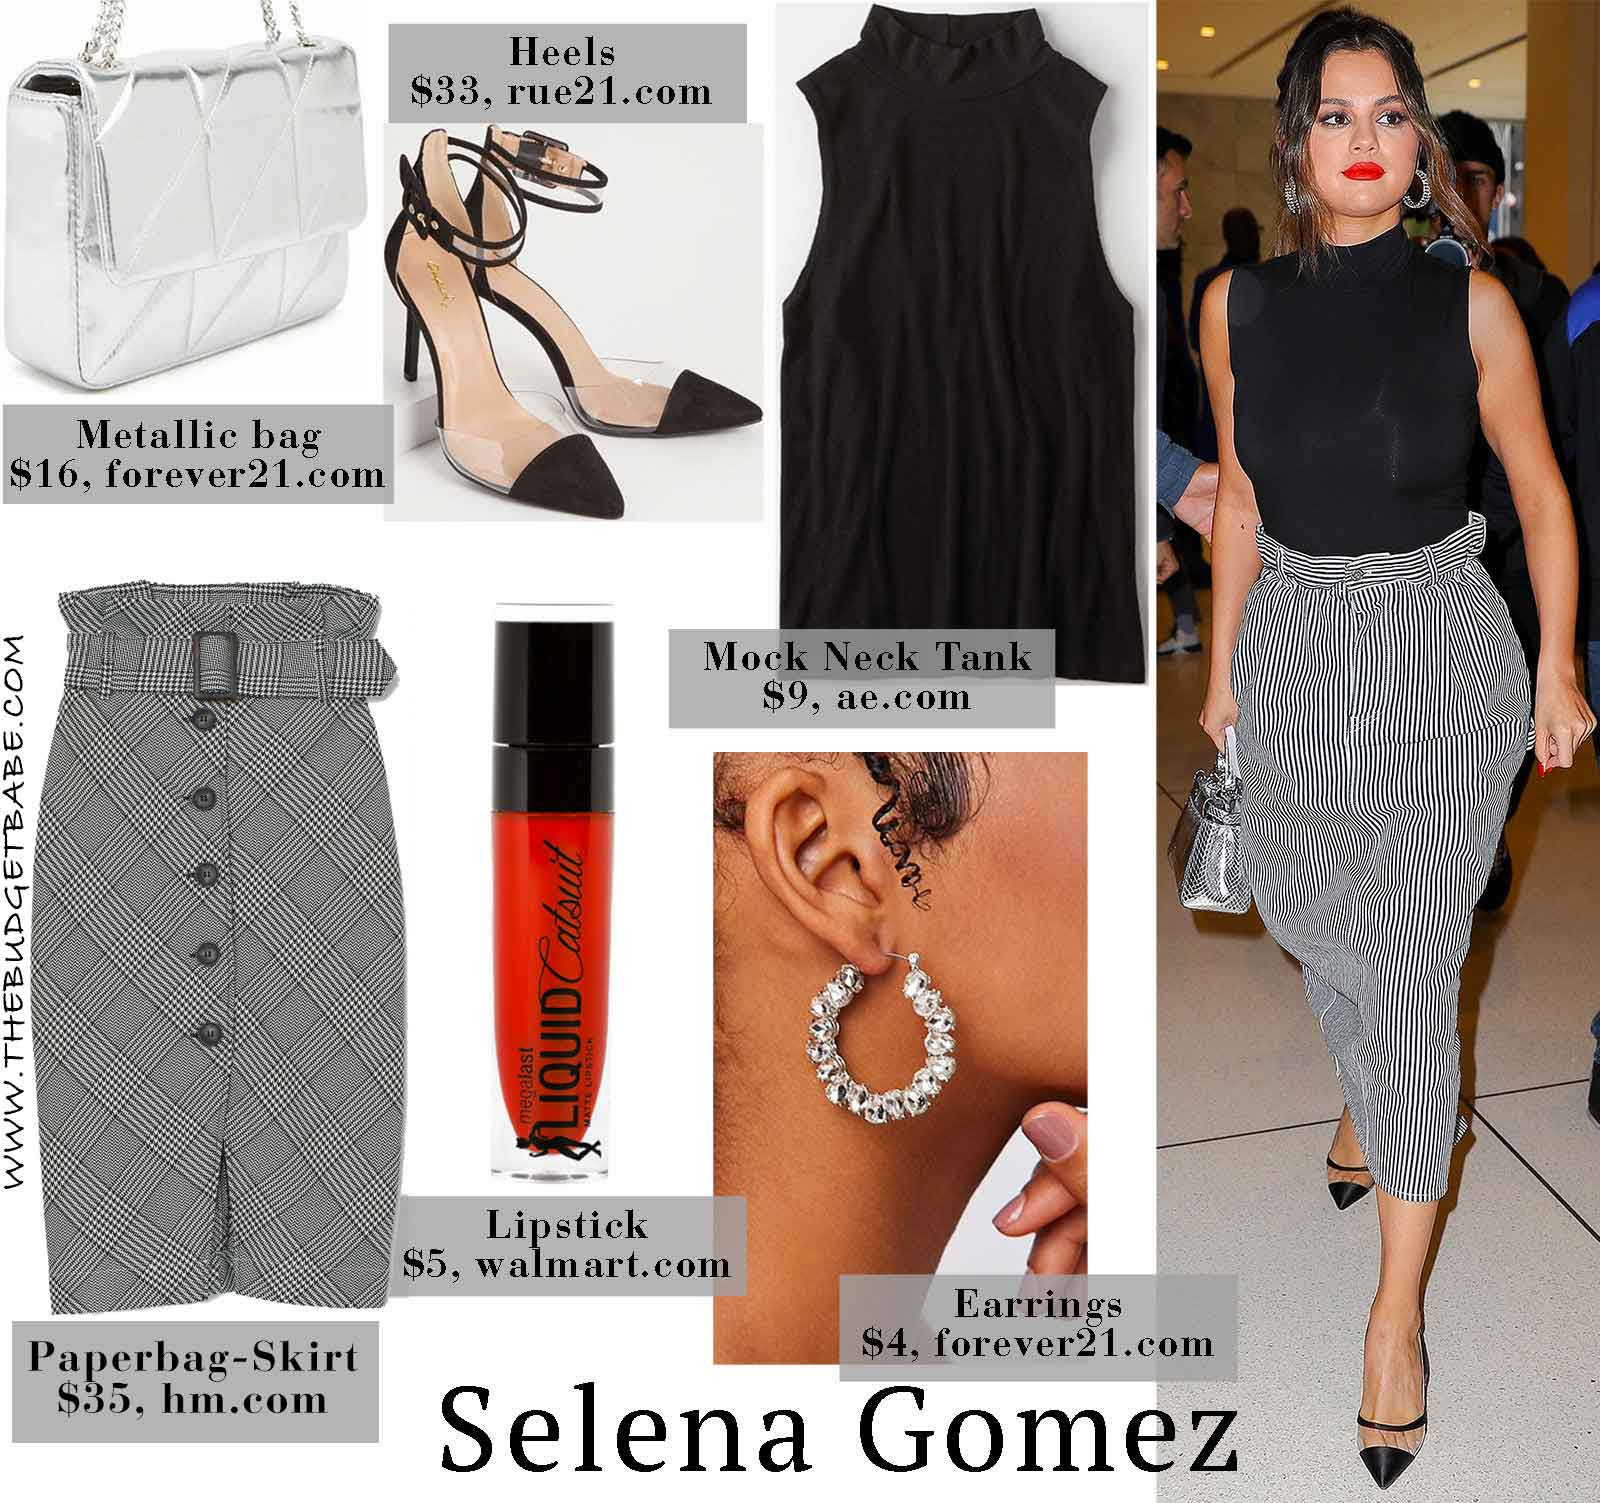 Selena Gomez's Striped Skirt, Black Tank, and Metallic Mini Bag Look for Less